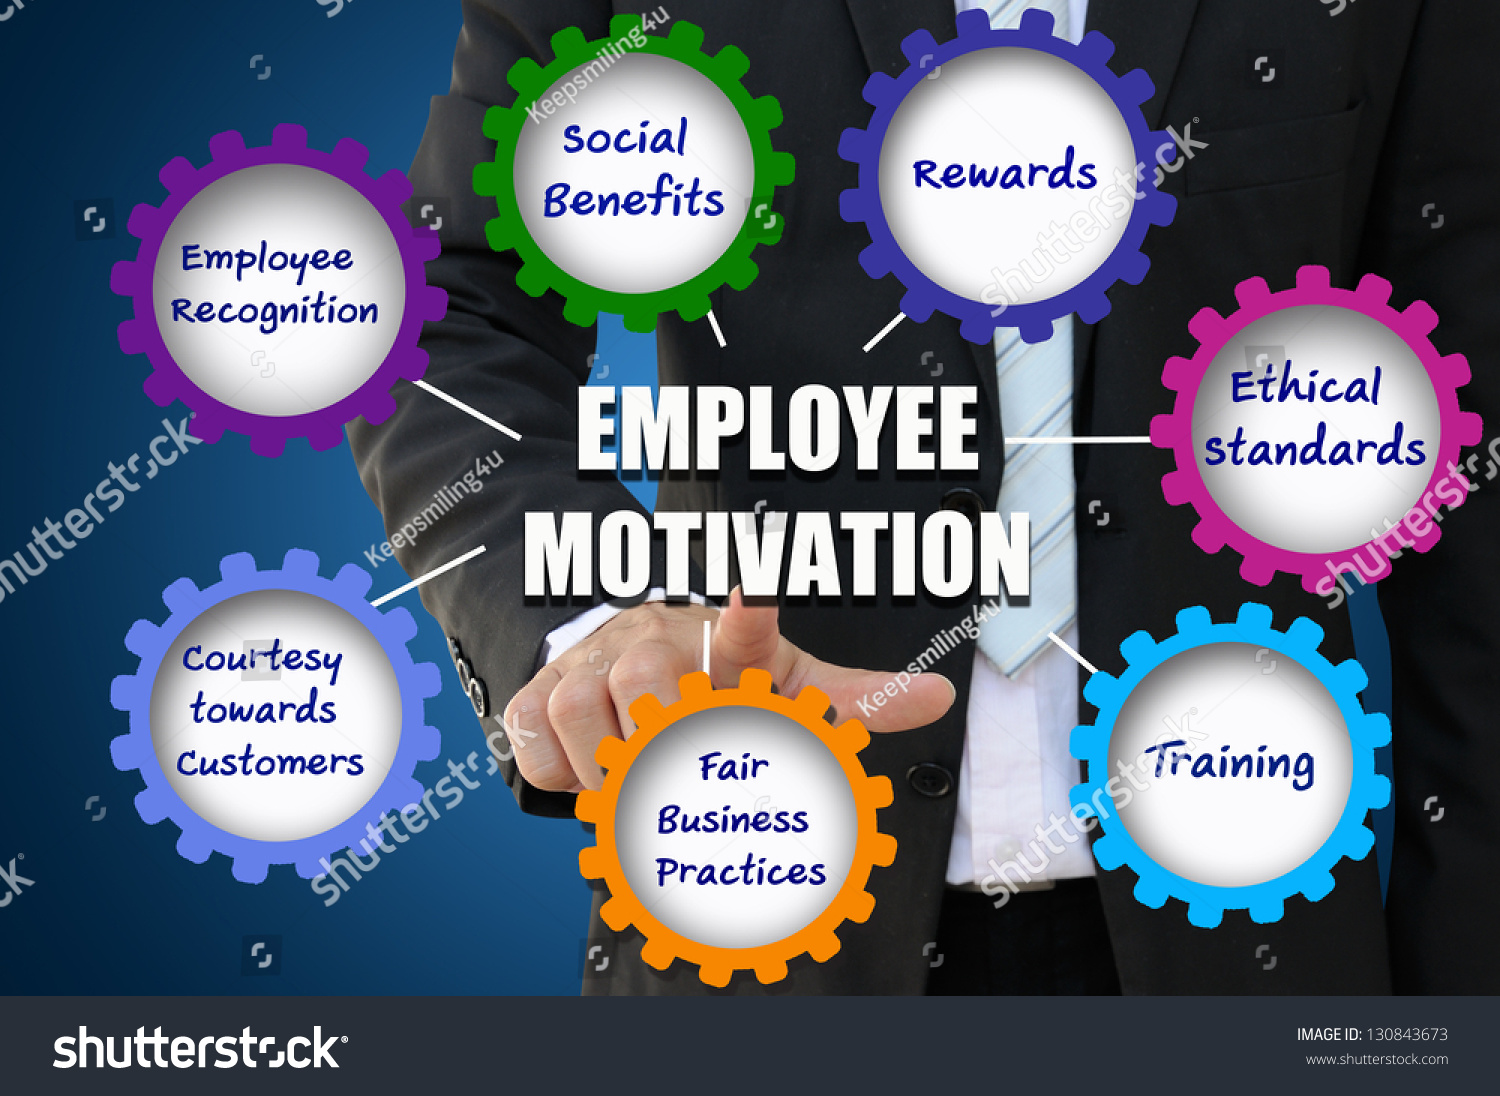 advantage and disadvantages of rewards and recognition Many employees welcome the recognition they receive in the form of monetary rewards, and employers who implement employee reward programs usually do so as an.